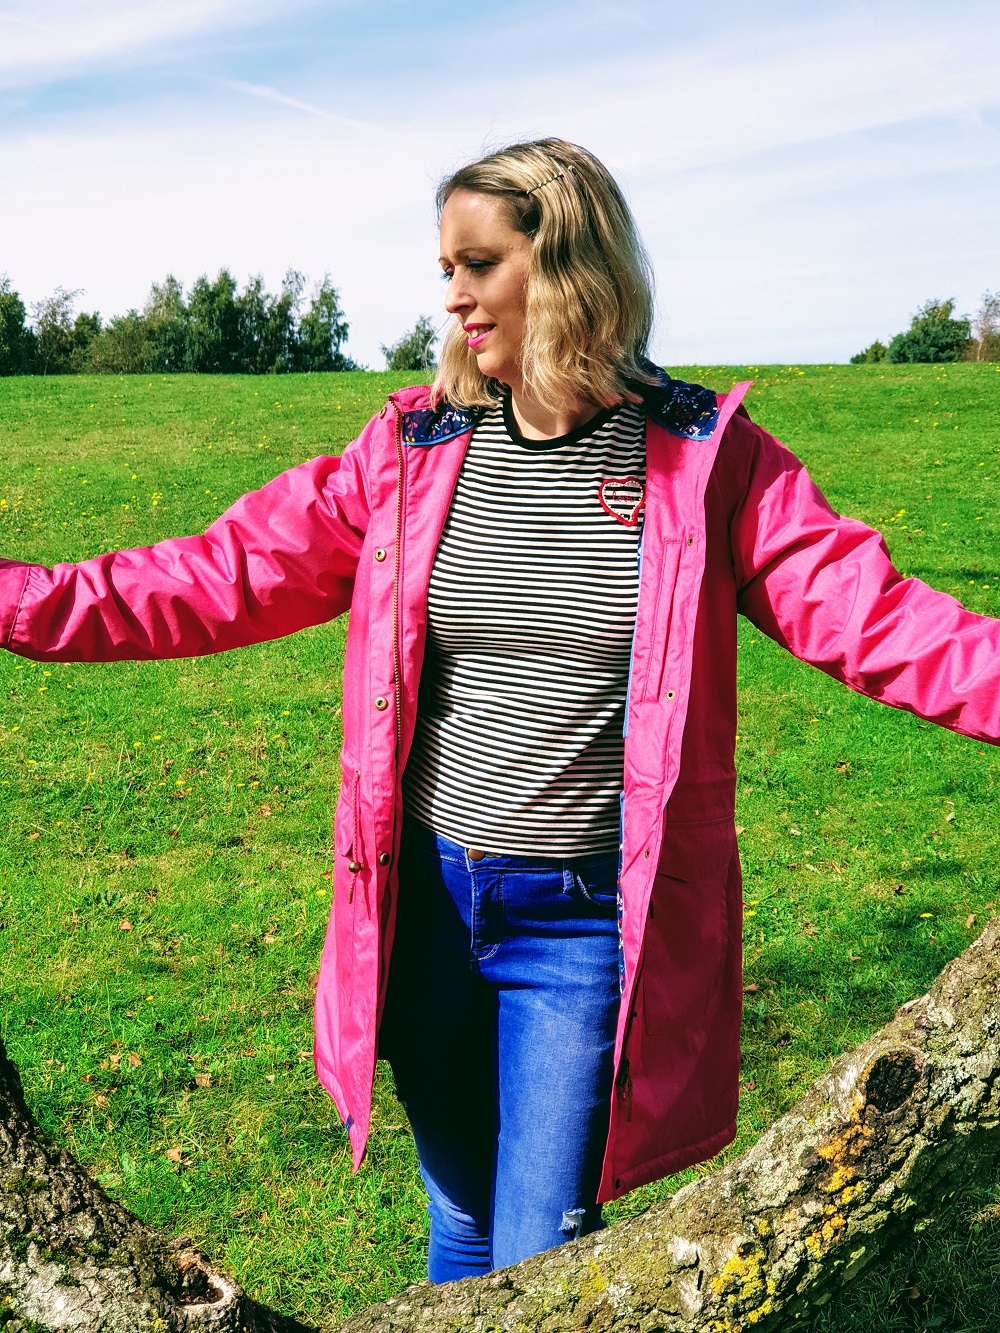 Turning My Blog Pink: Breast Cancer Awareness Month